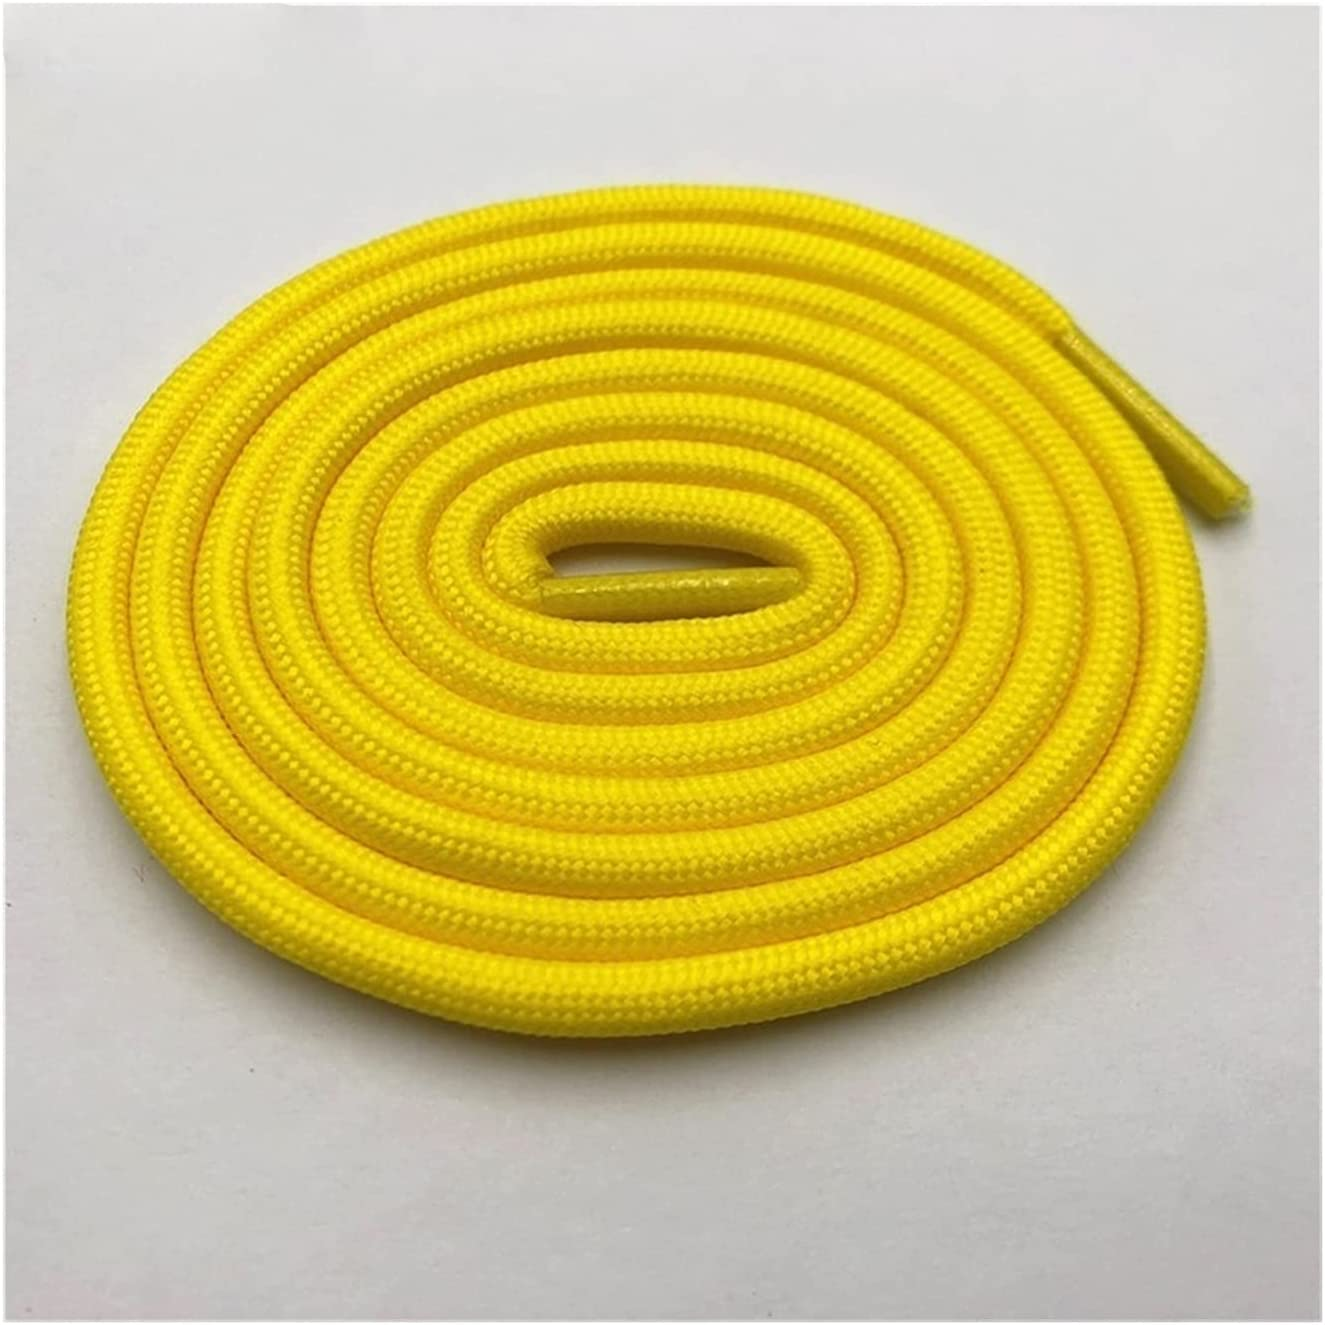 MLKCL Round Max 86% OFF Sports Inventory cleanup selling sale Shoelace Hiking : Color Yellow 2712